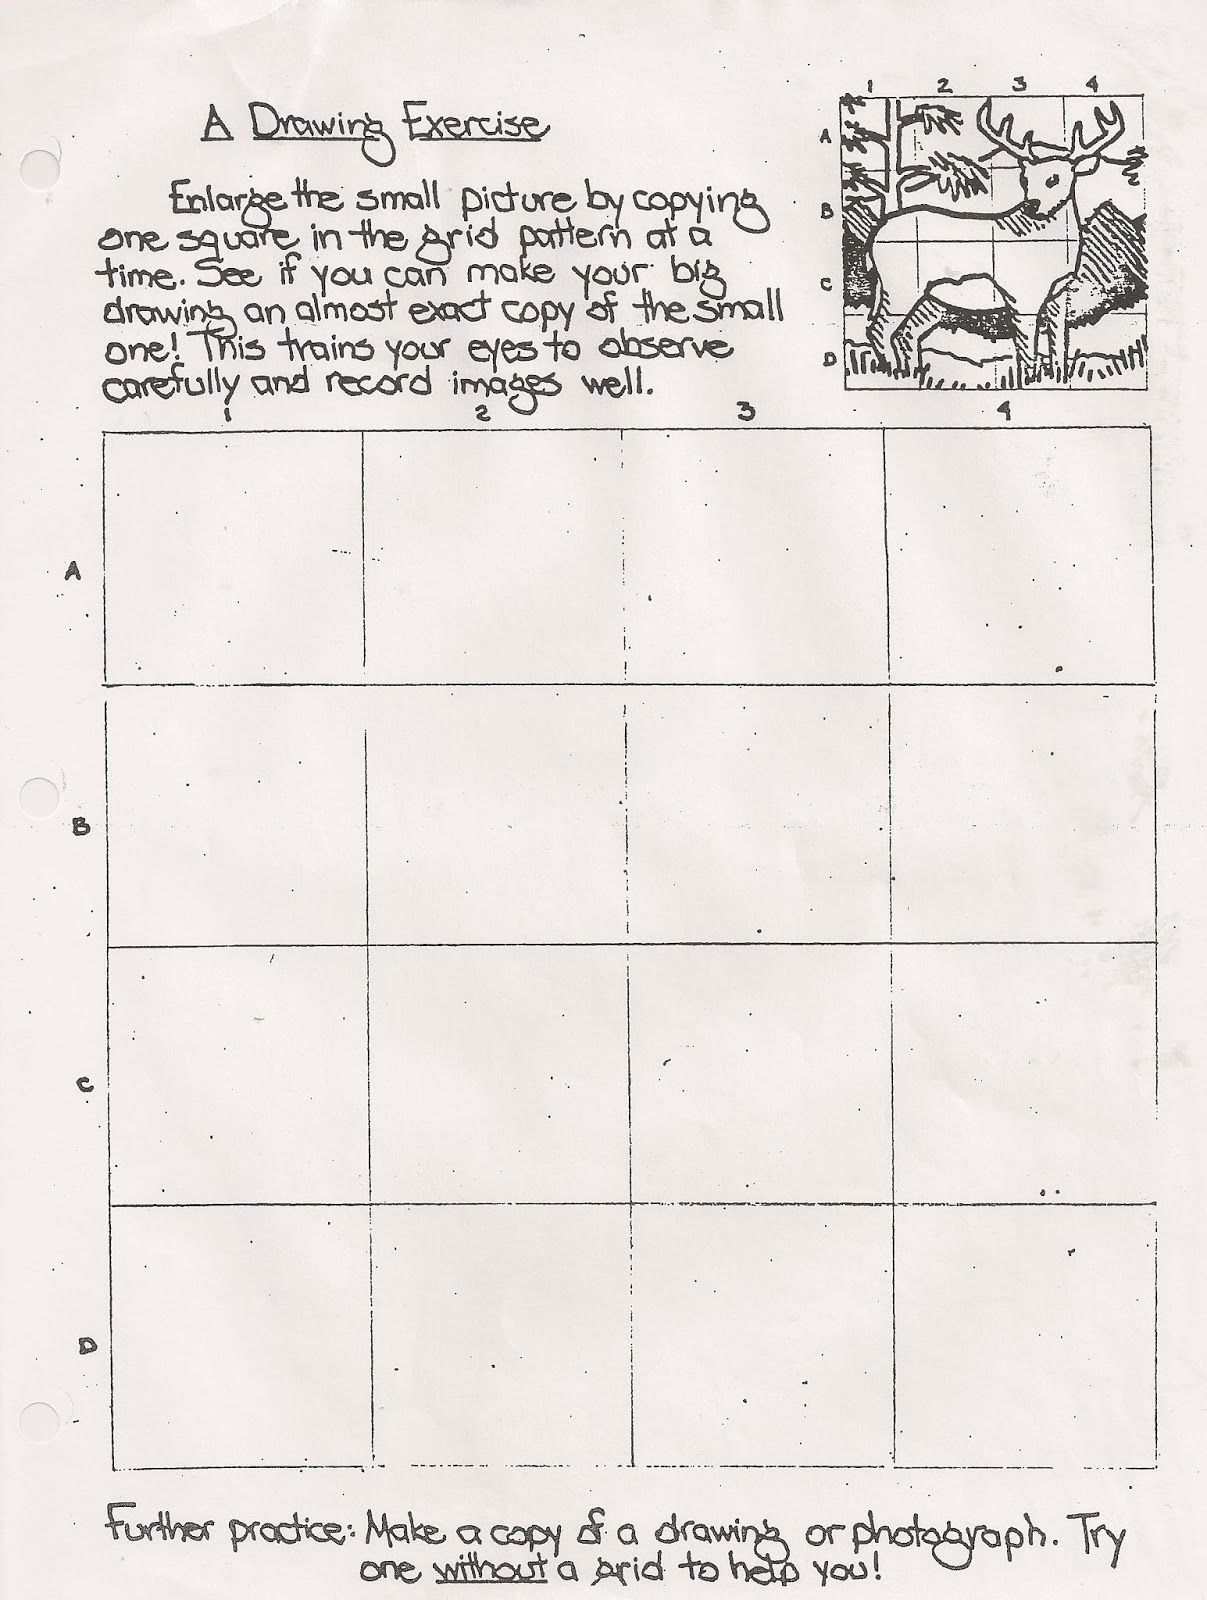 worksheet Grid Art Worksheets 1000 images about grid drawing practice on pinterest activities and creative